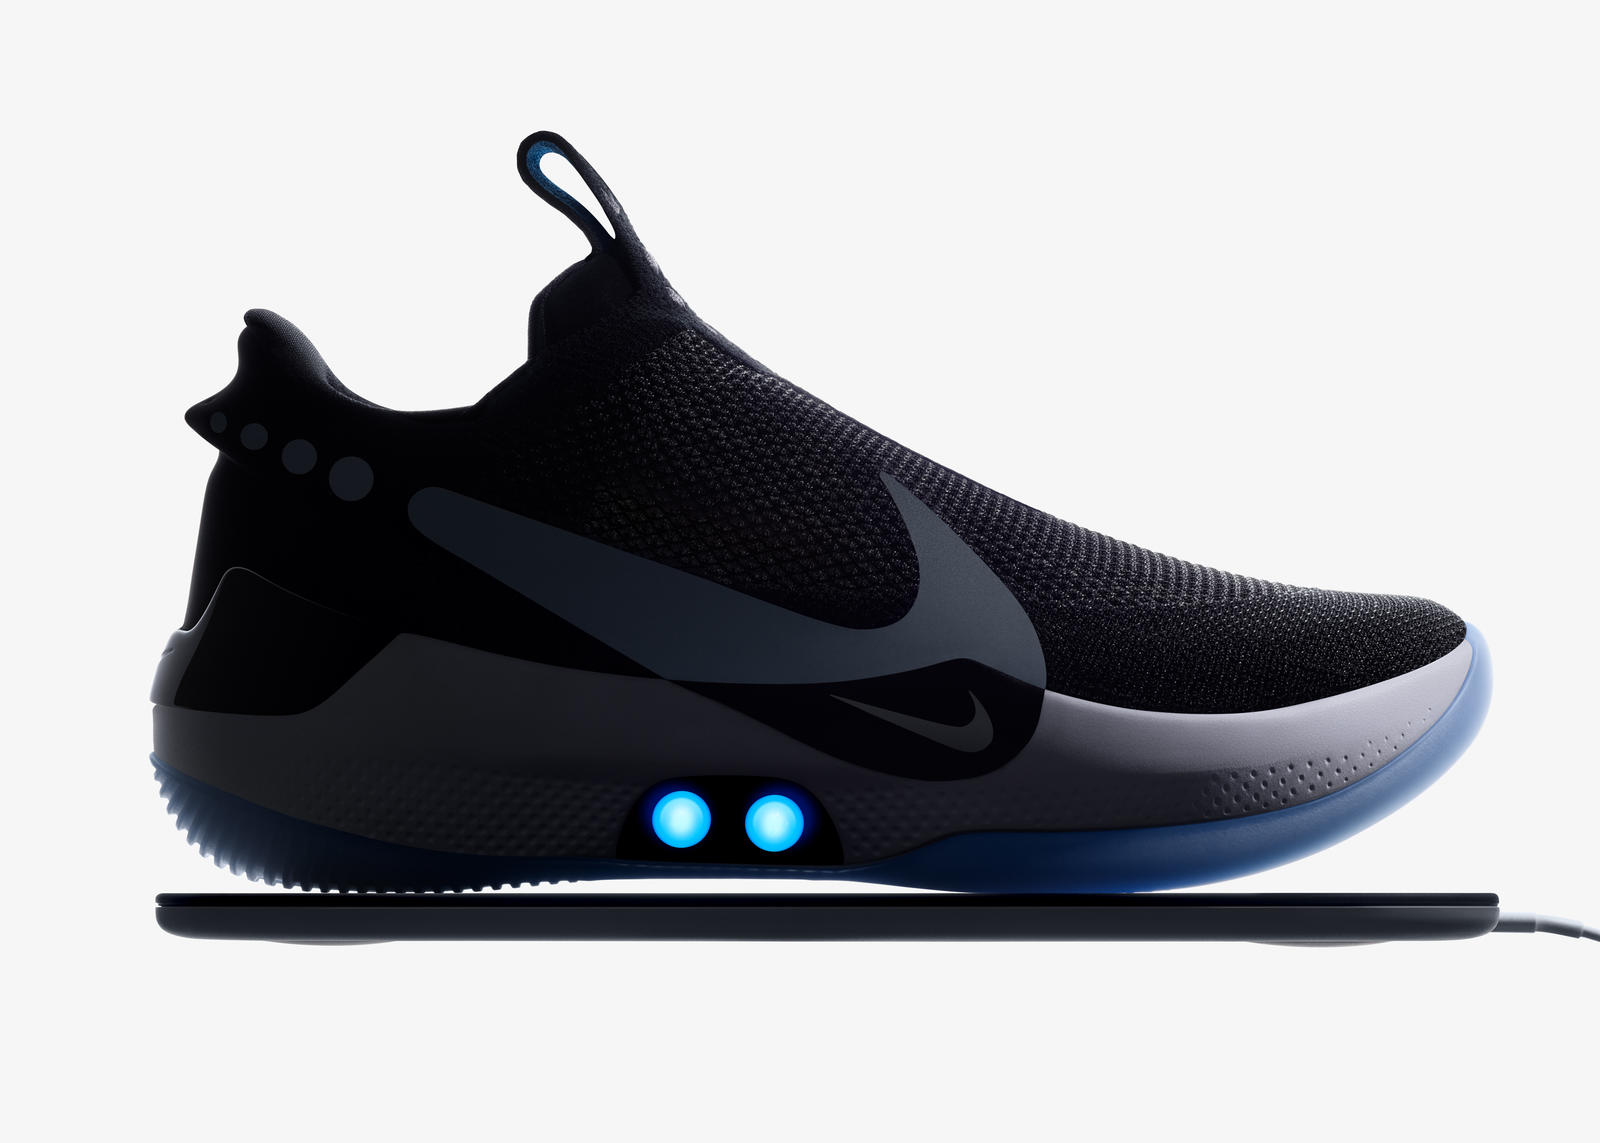 low priced 1cb58 86159 What is Nike Adapt  4. The new Nike Adapt BB basketball shoe